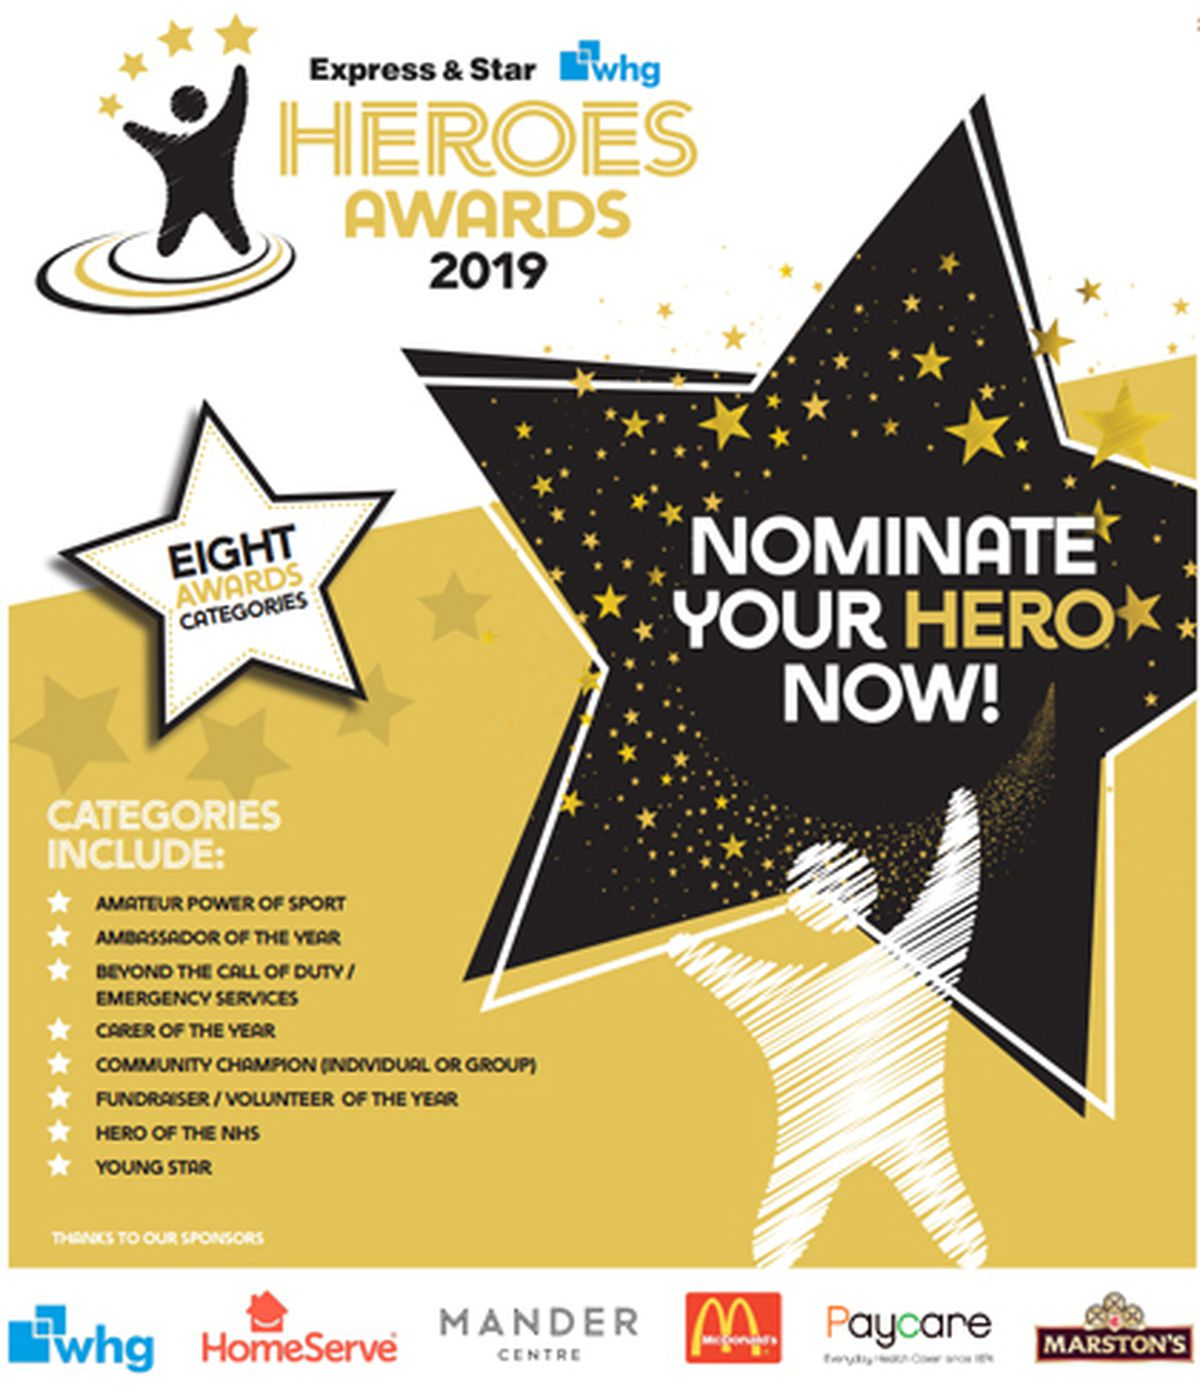 The Express & Star Heroes Awards 2019 have launched